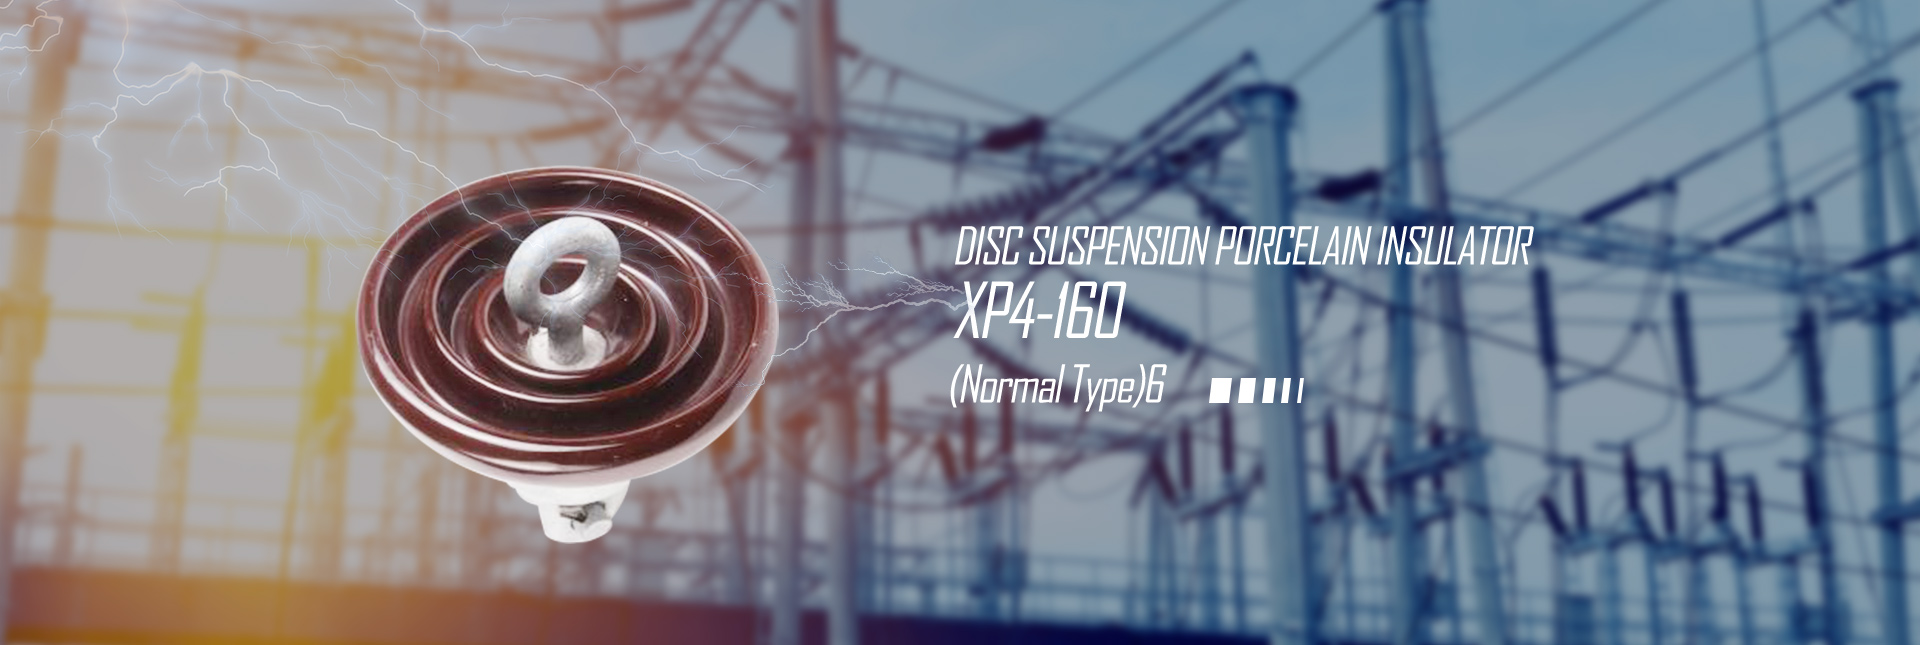 disc-suspension